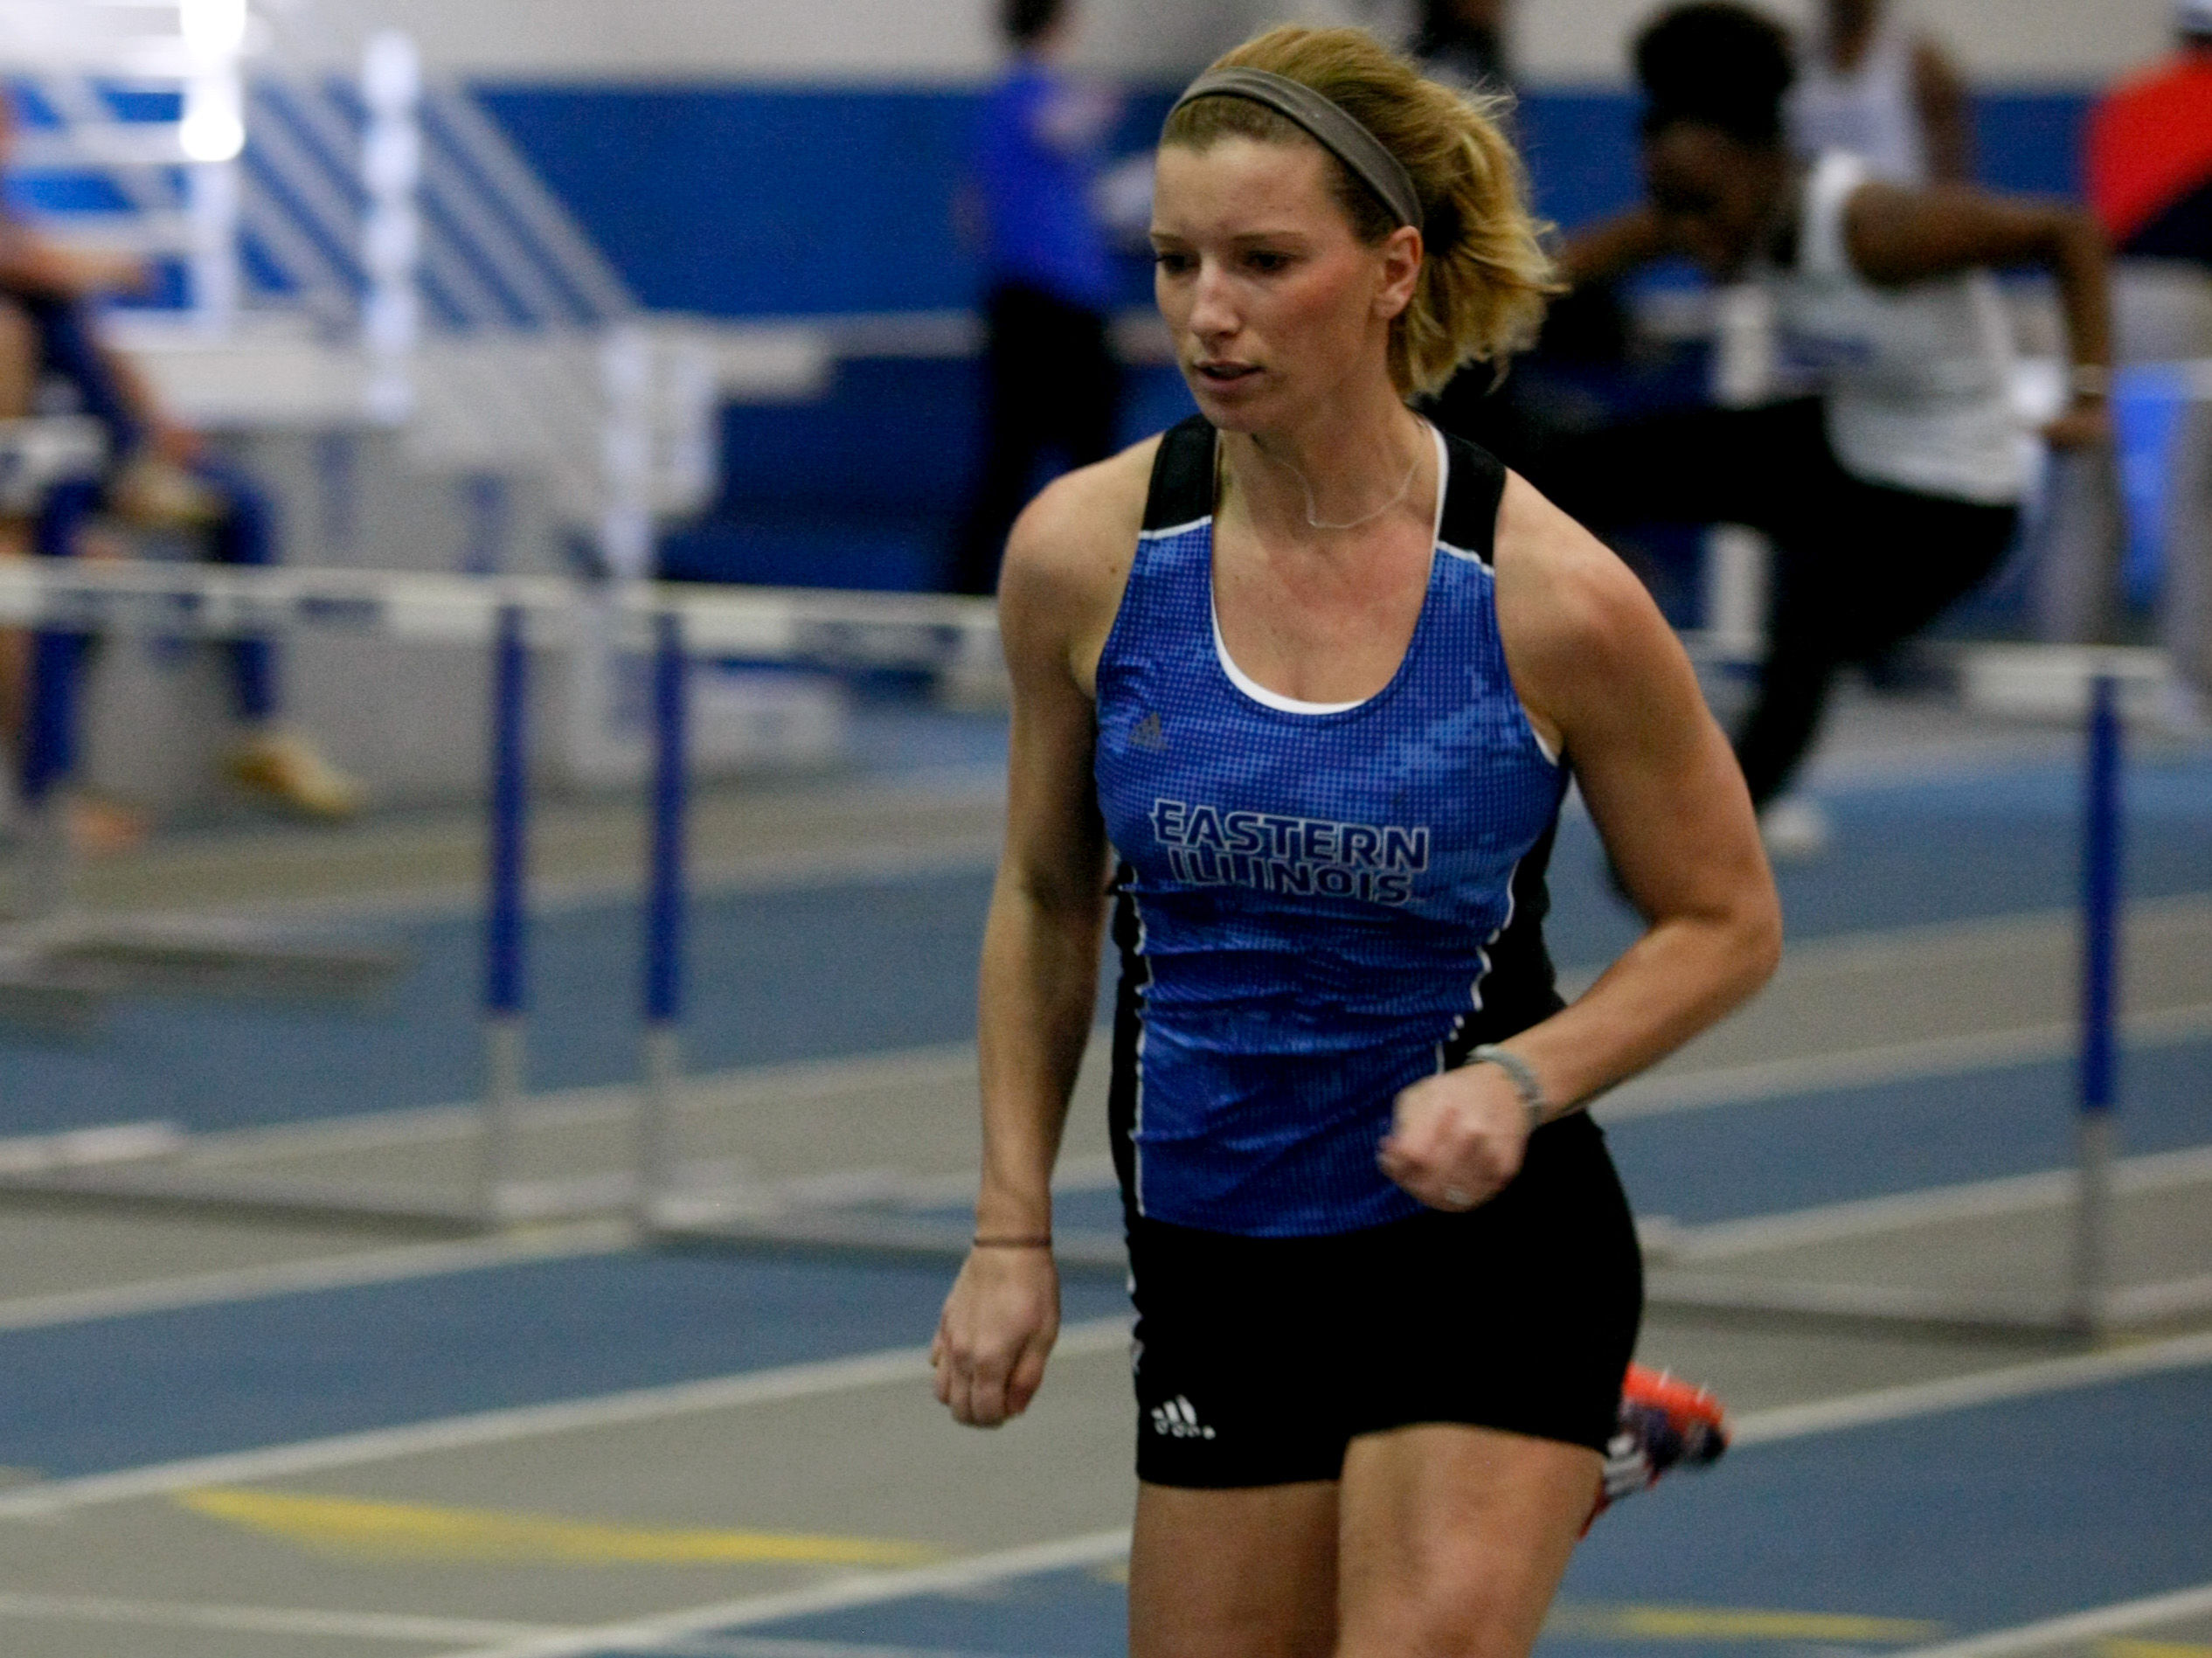 Senior Tori Master competes in the hurdles at the Friday Night Special in the Lantz Fieldhouse Feb. 17.